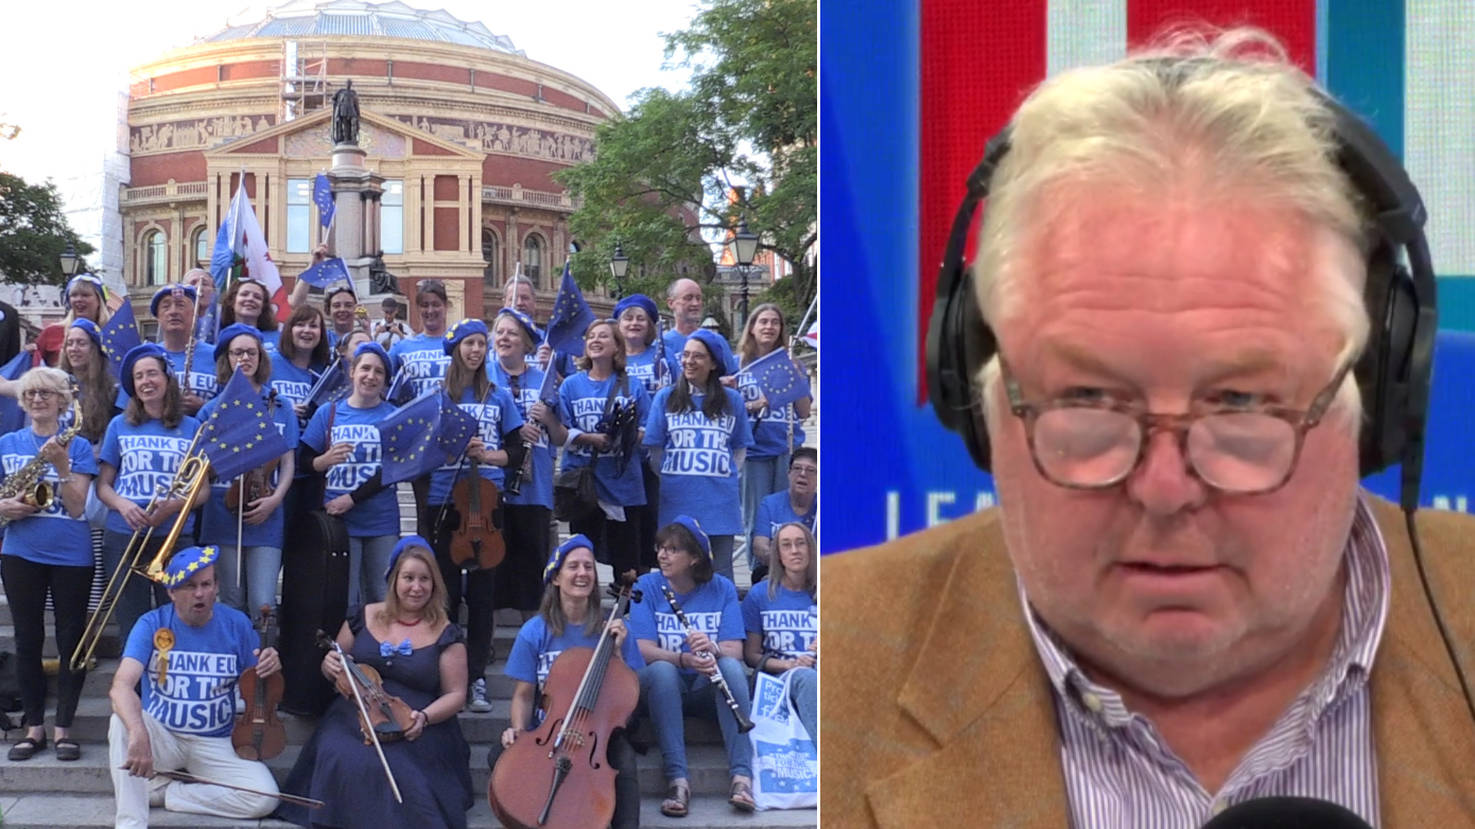 Man Who Handed Out EU Flags At Last Night Of The Proms Calls LBC To Defend Campaign